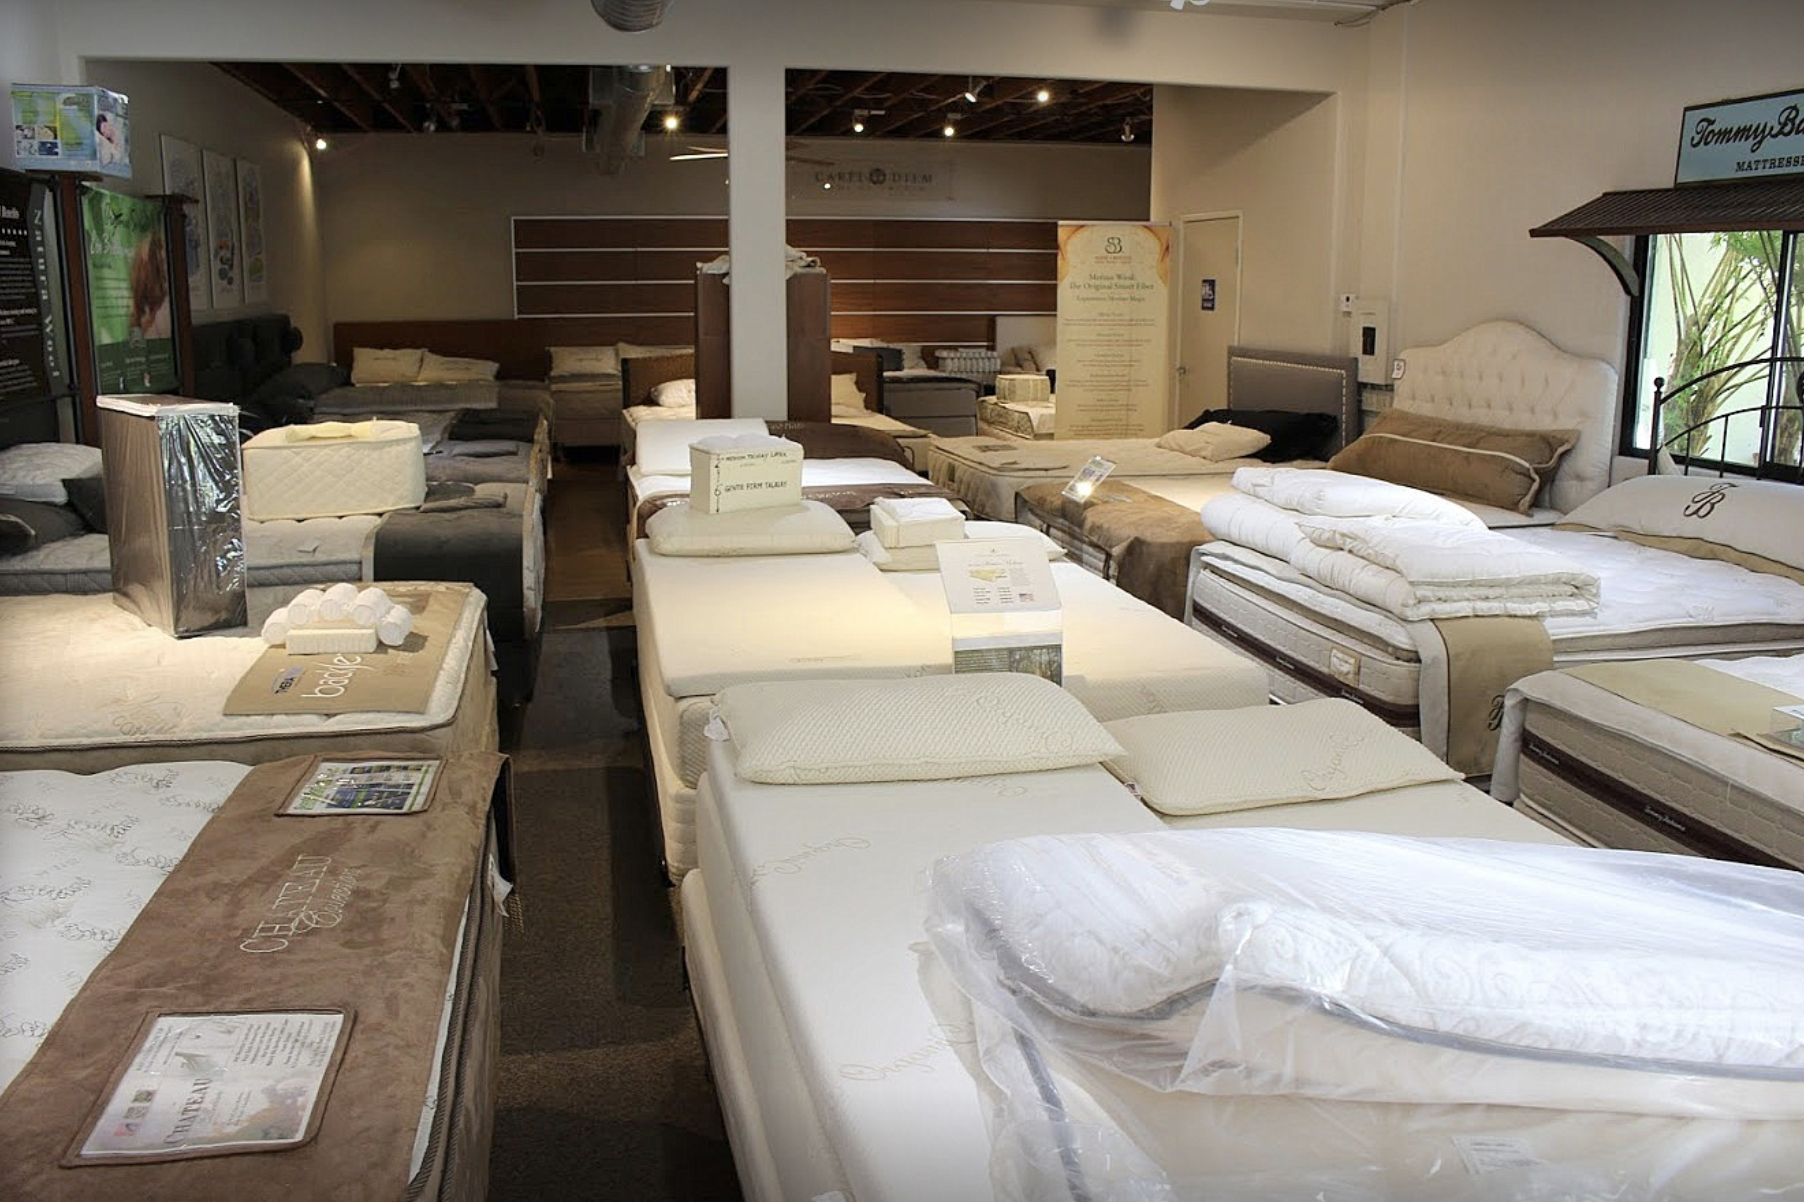 Santa Barbara Mattress – Natural Talalay Latex Mattress And Latex Pillow Store In Santa Barbara California